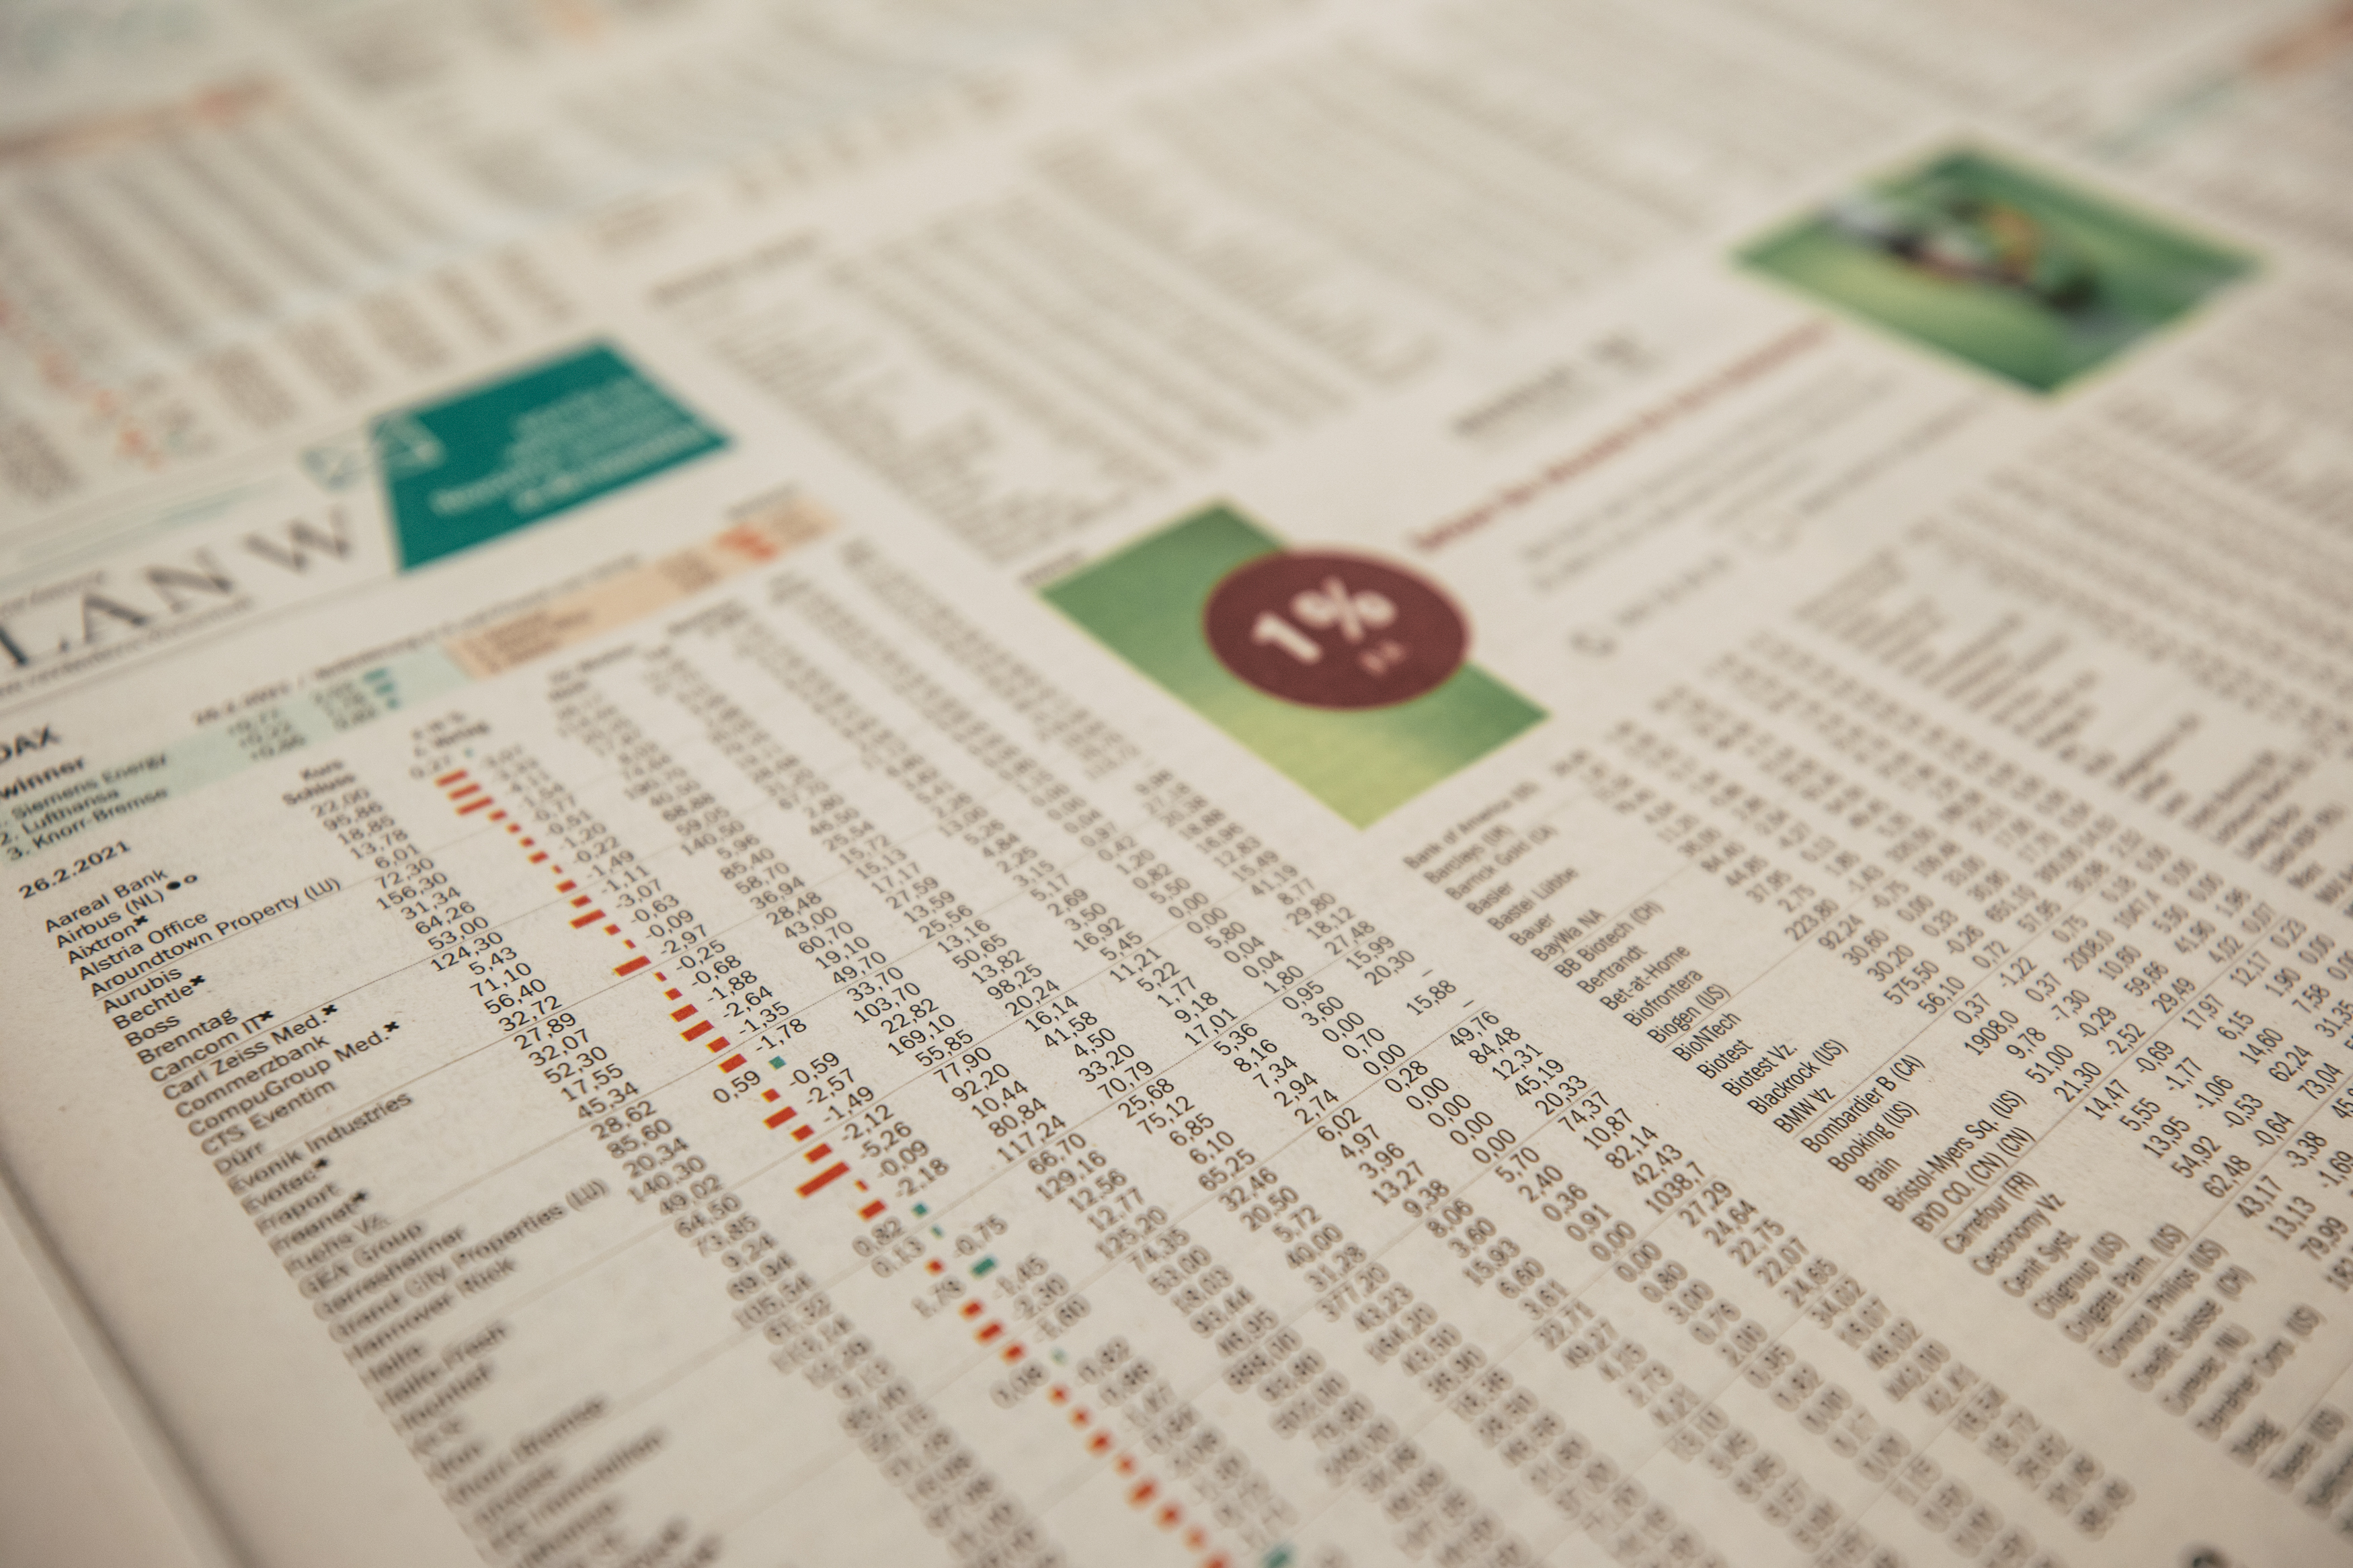 Daily newspaper economy stockmarket charts, trends and share price